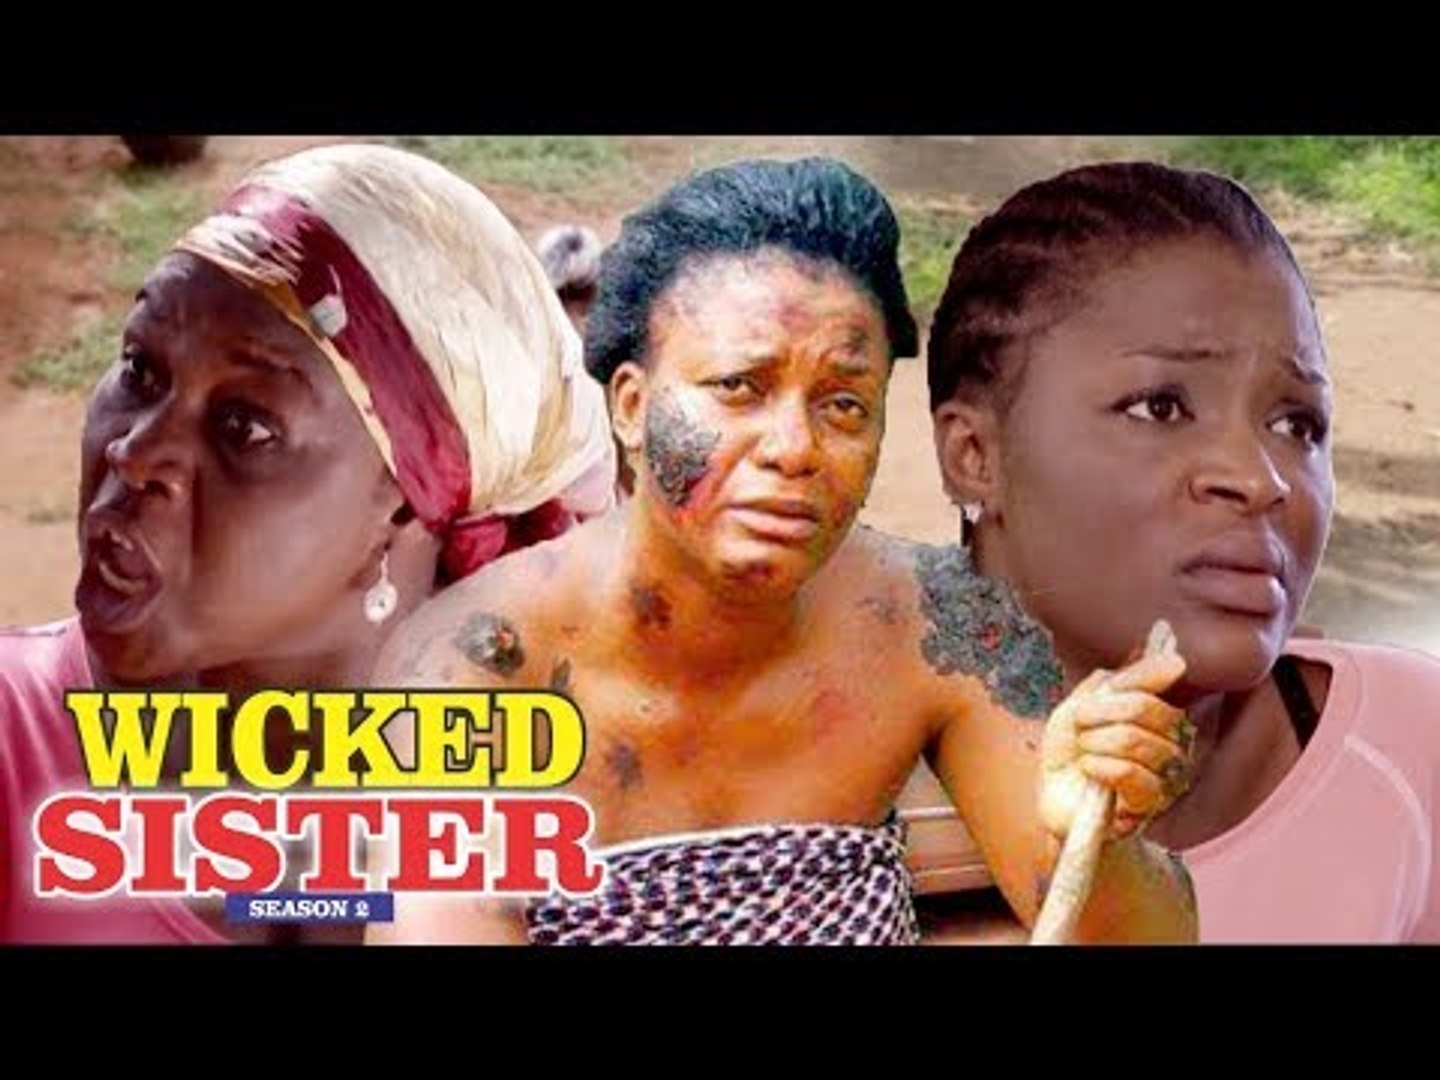 WICKED SISTER 2 - LATEST NIGERIAN NOLLYWOOD MOVIES || TRENDING NOLLYWOOD MOVIES